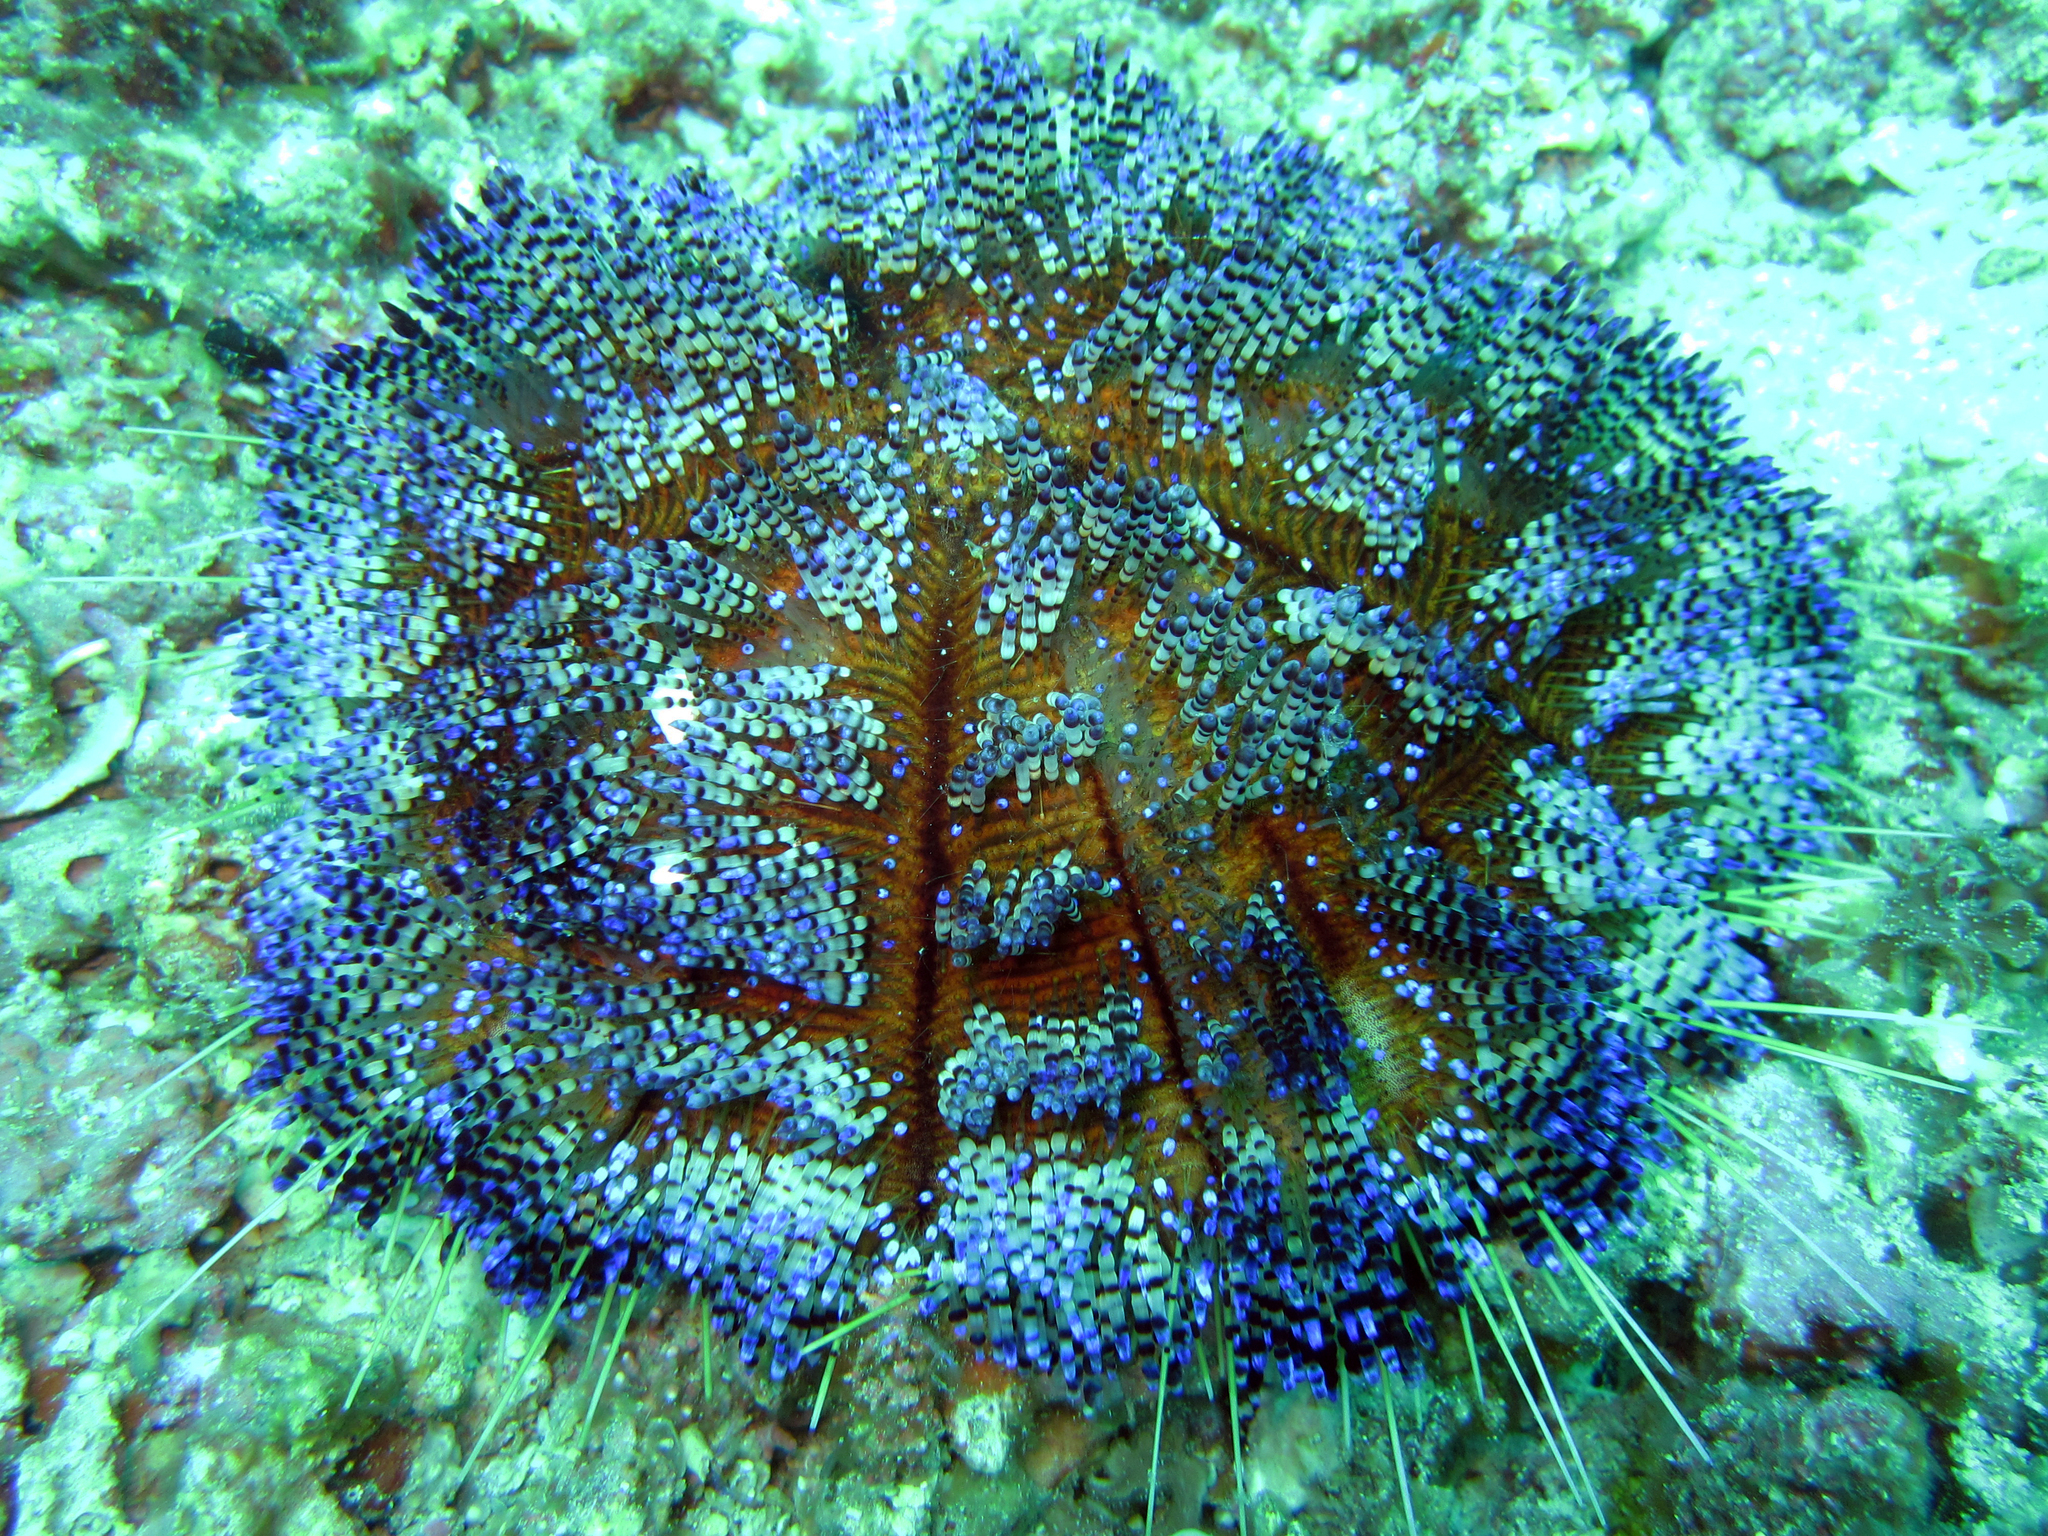 Image of variable fire urchin